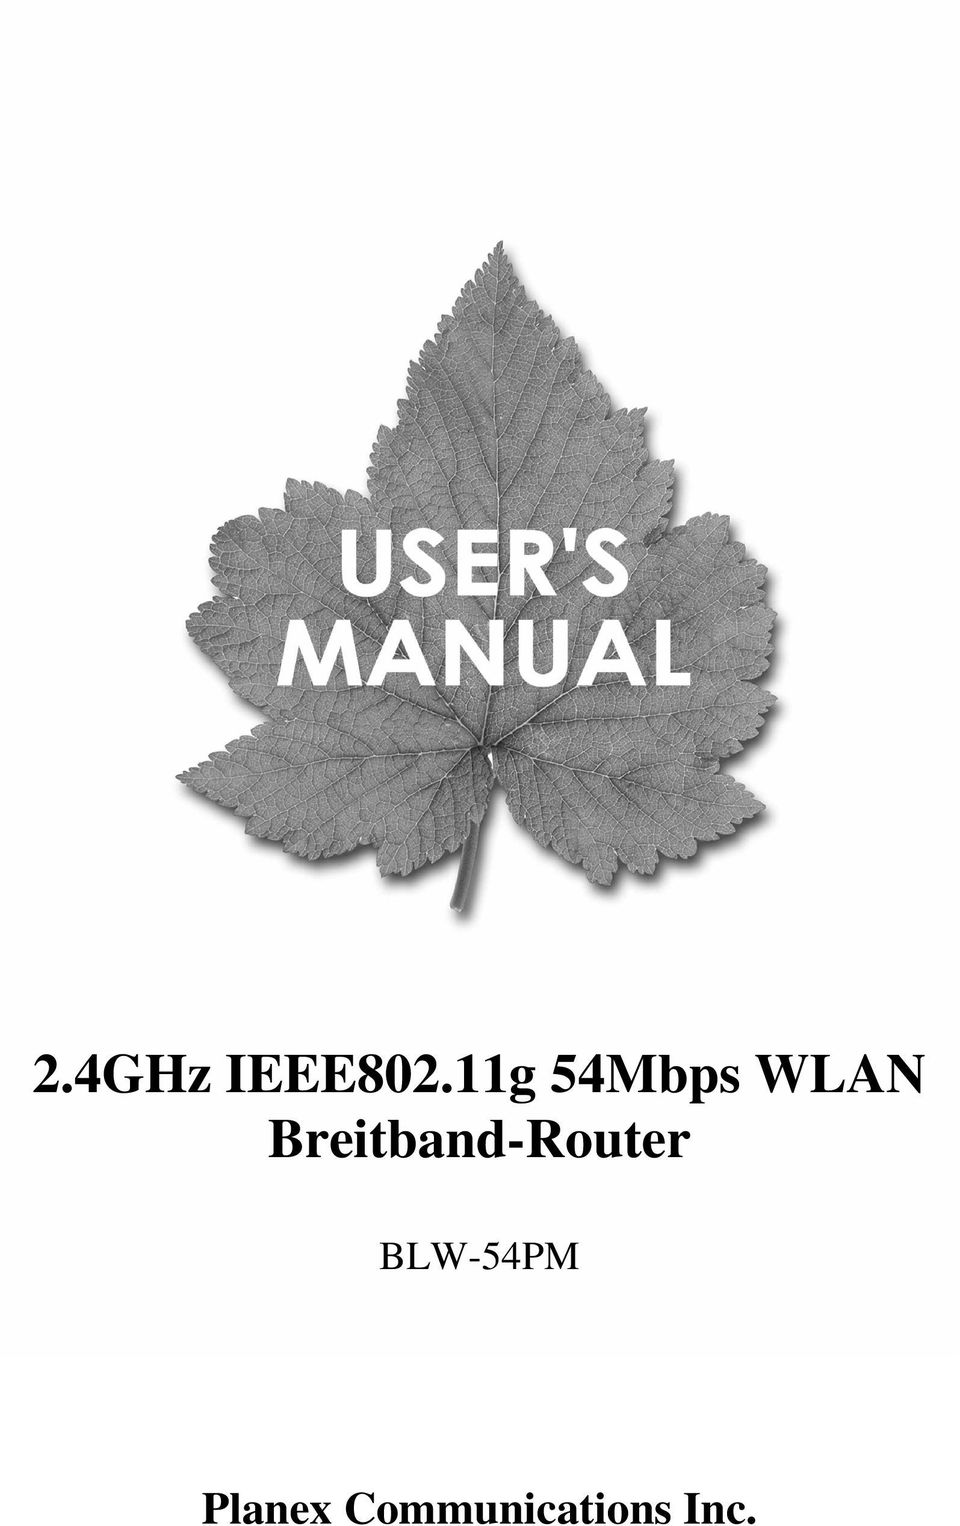 Breitband-Router